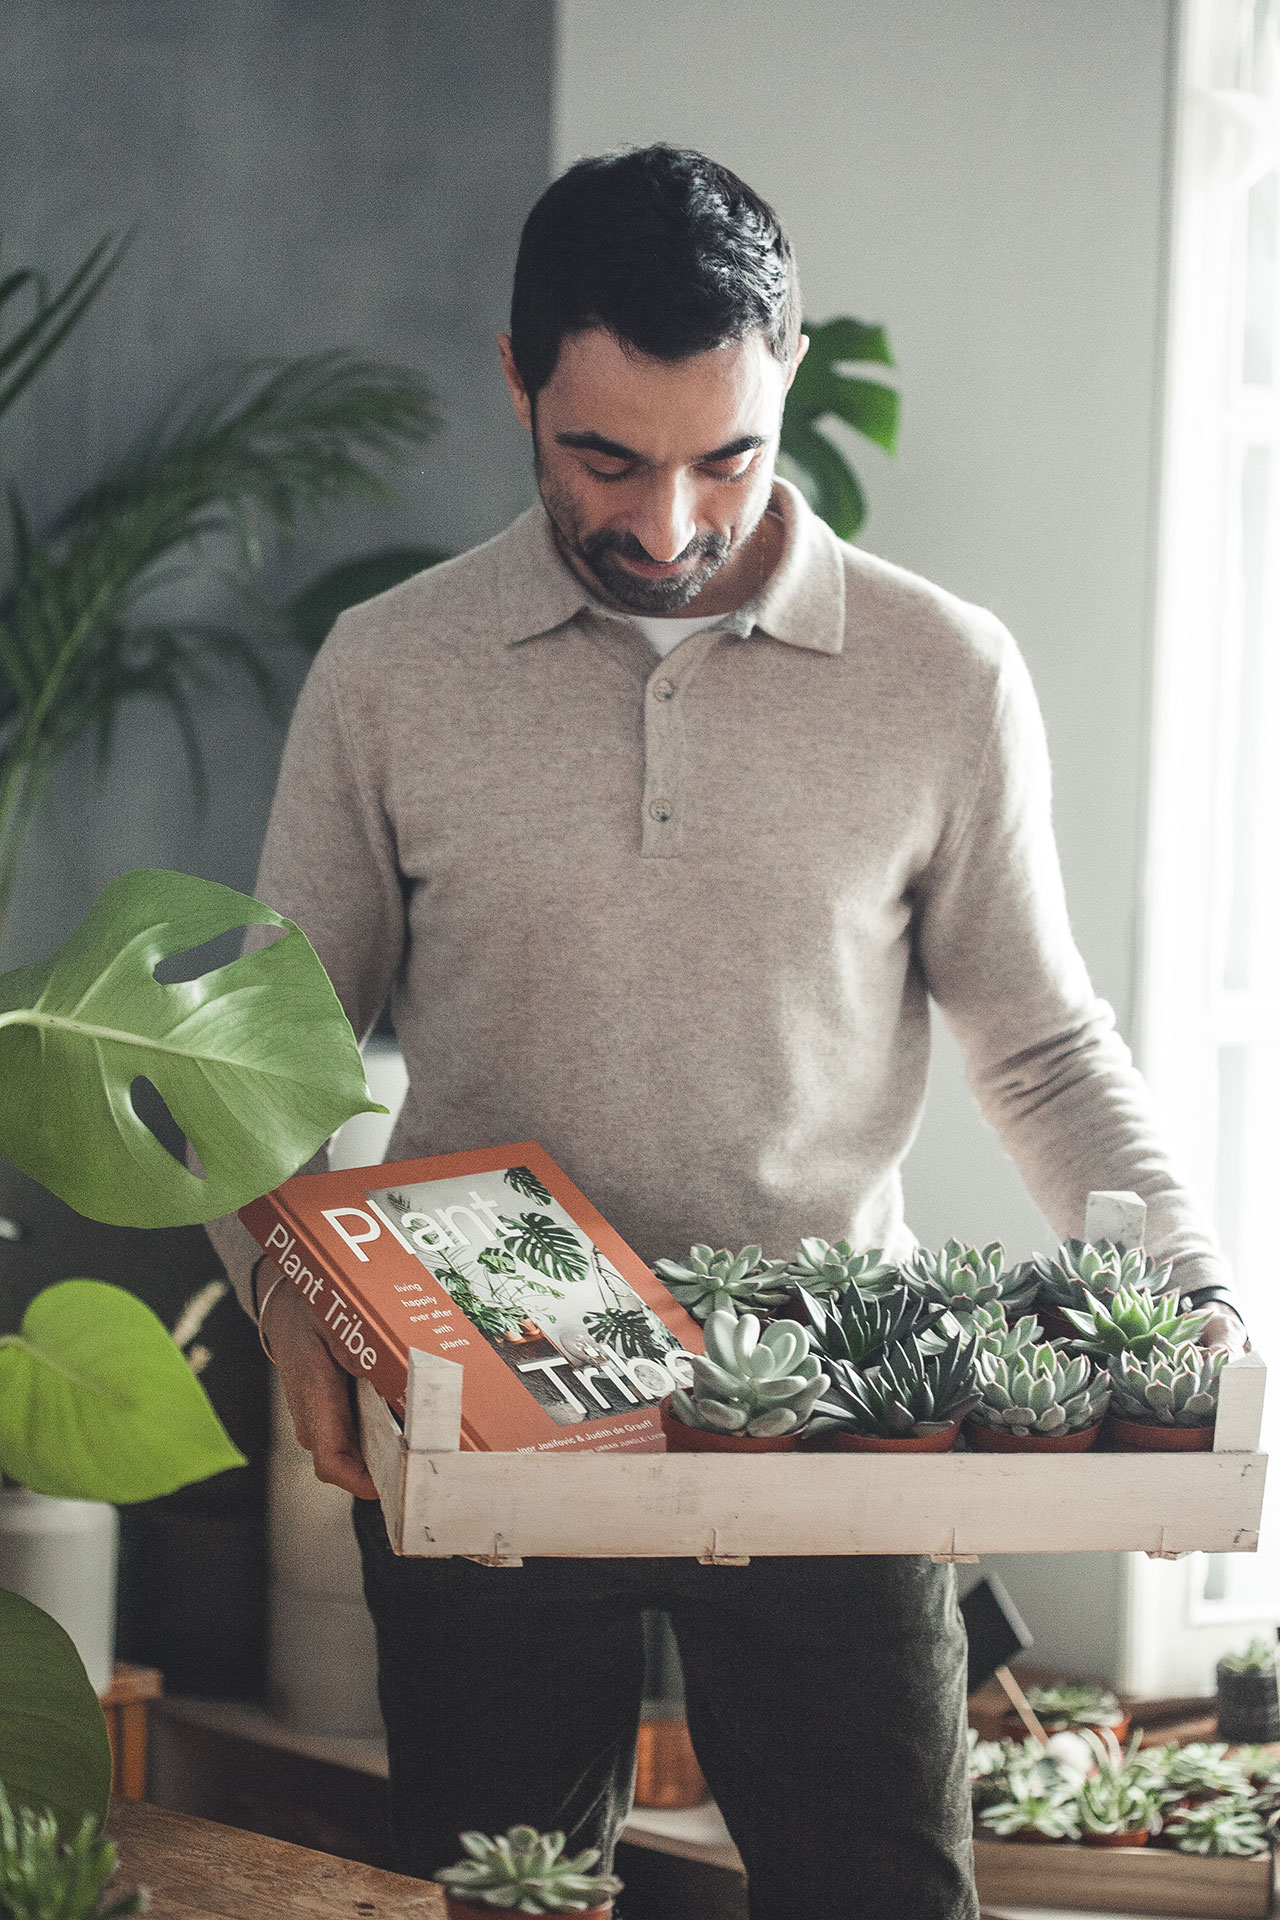 Igor Josifovic, co-author of PLANT TRIBE / LIVING HAPPILY EVER AFTER WITH PLANTS.